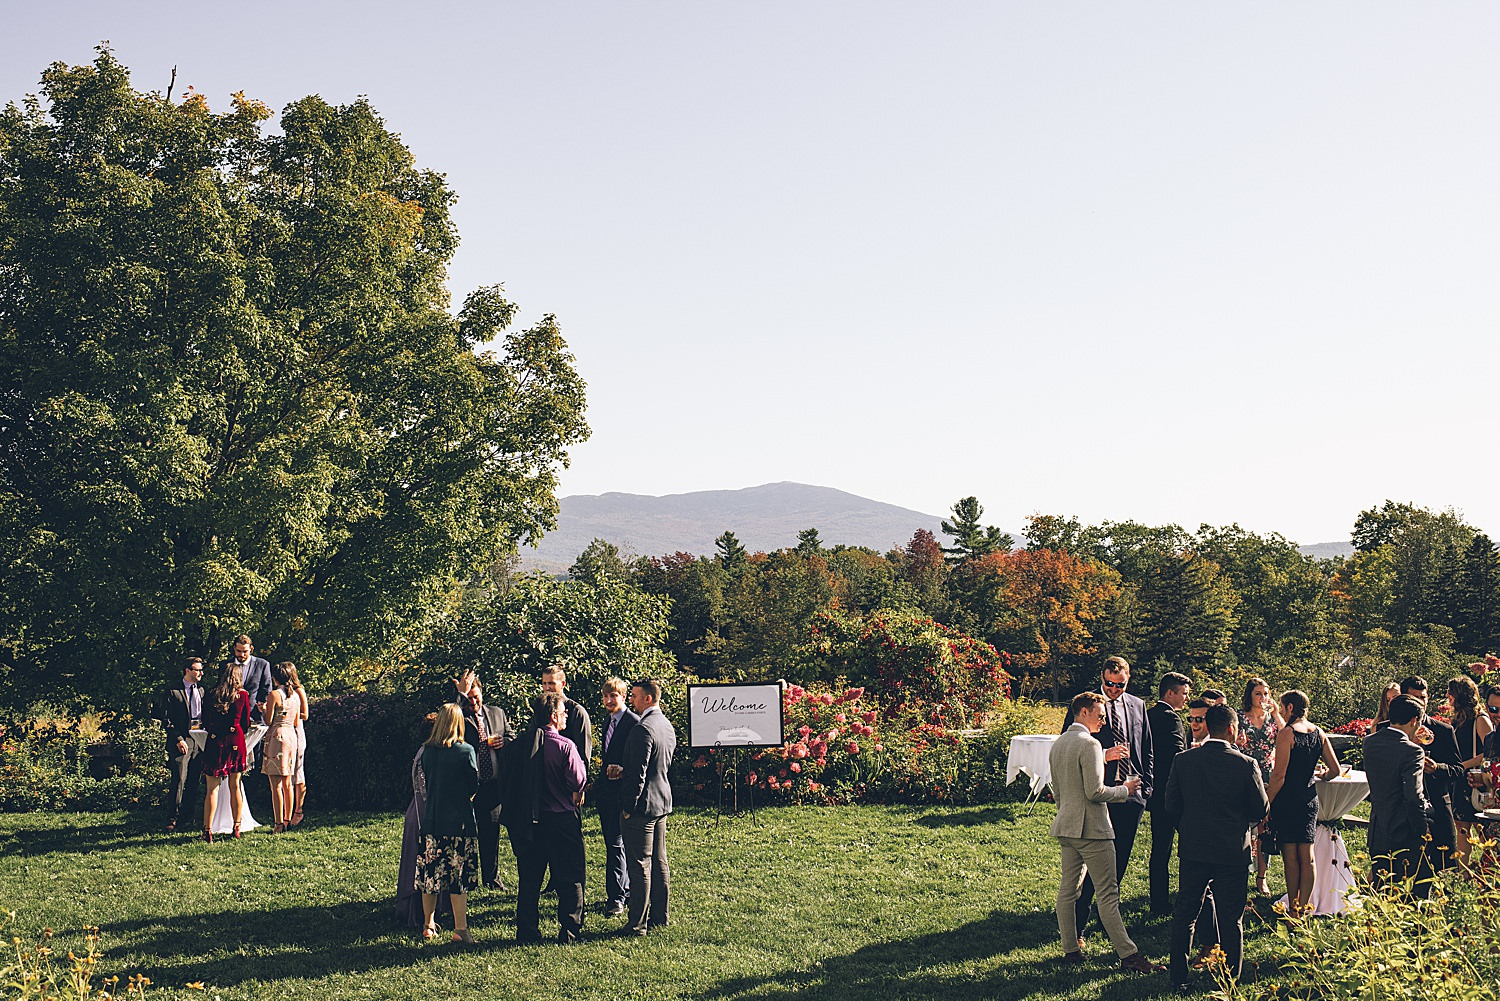 wedding guests mingling on the lawn